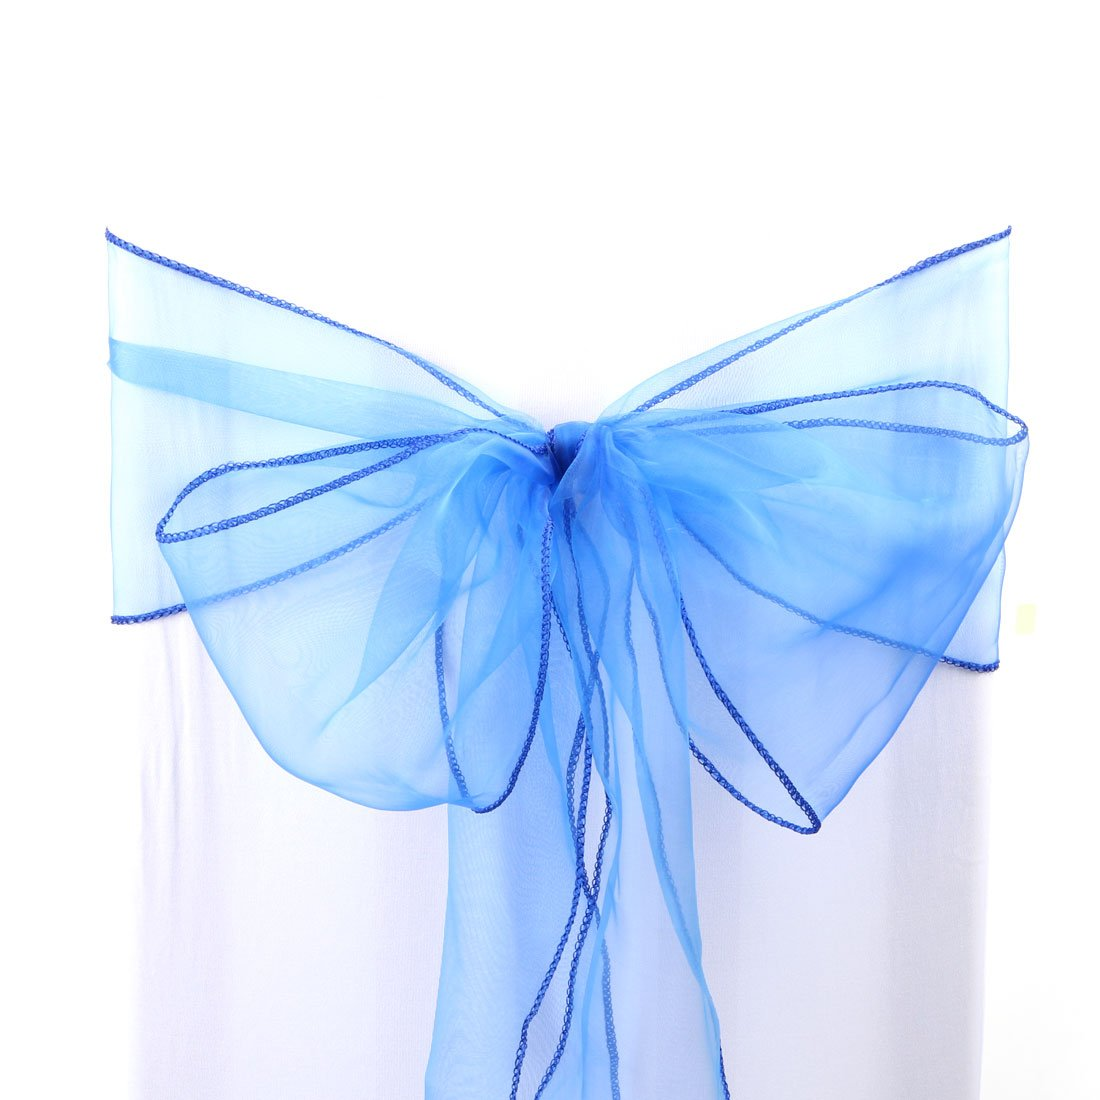 uxcell 1pcs Organza Sashes Chair Cover Bows Sash Fuller Bow for Wedding Party Birthday Banquet Event Decoration Blue a17010900ux0434